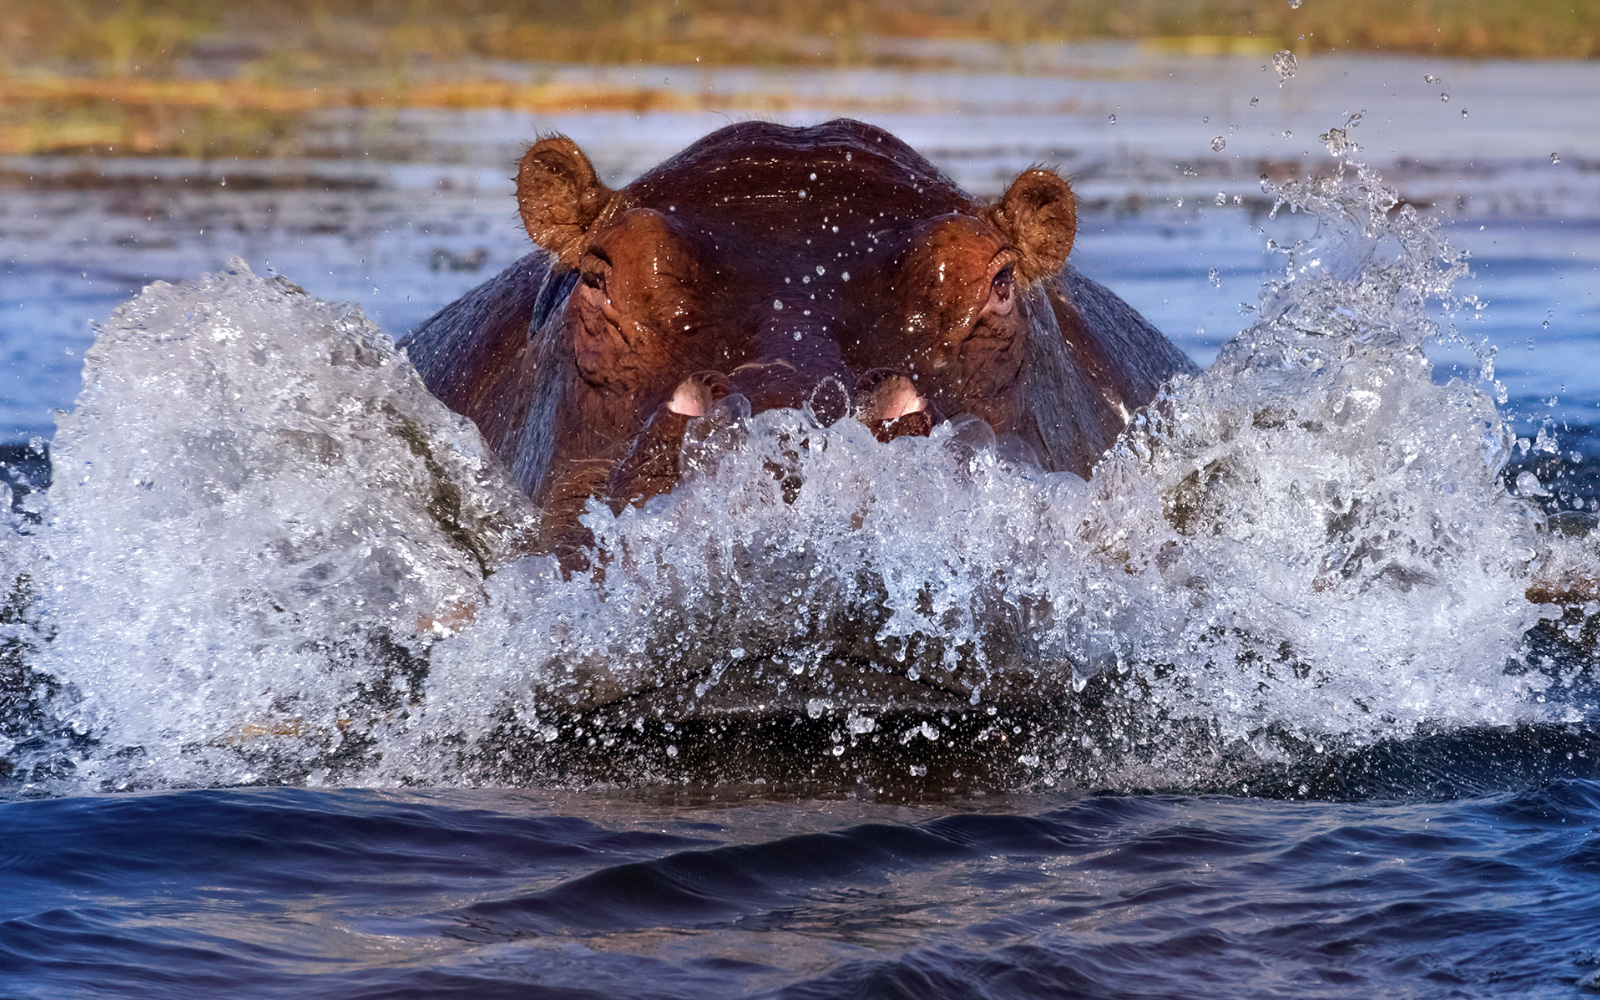 A hippo charges through the water in Chobe National Park, Botswana © Panos Laskarakis